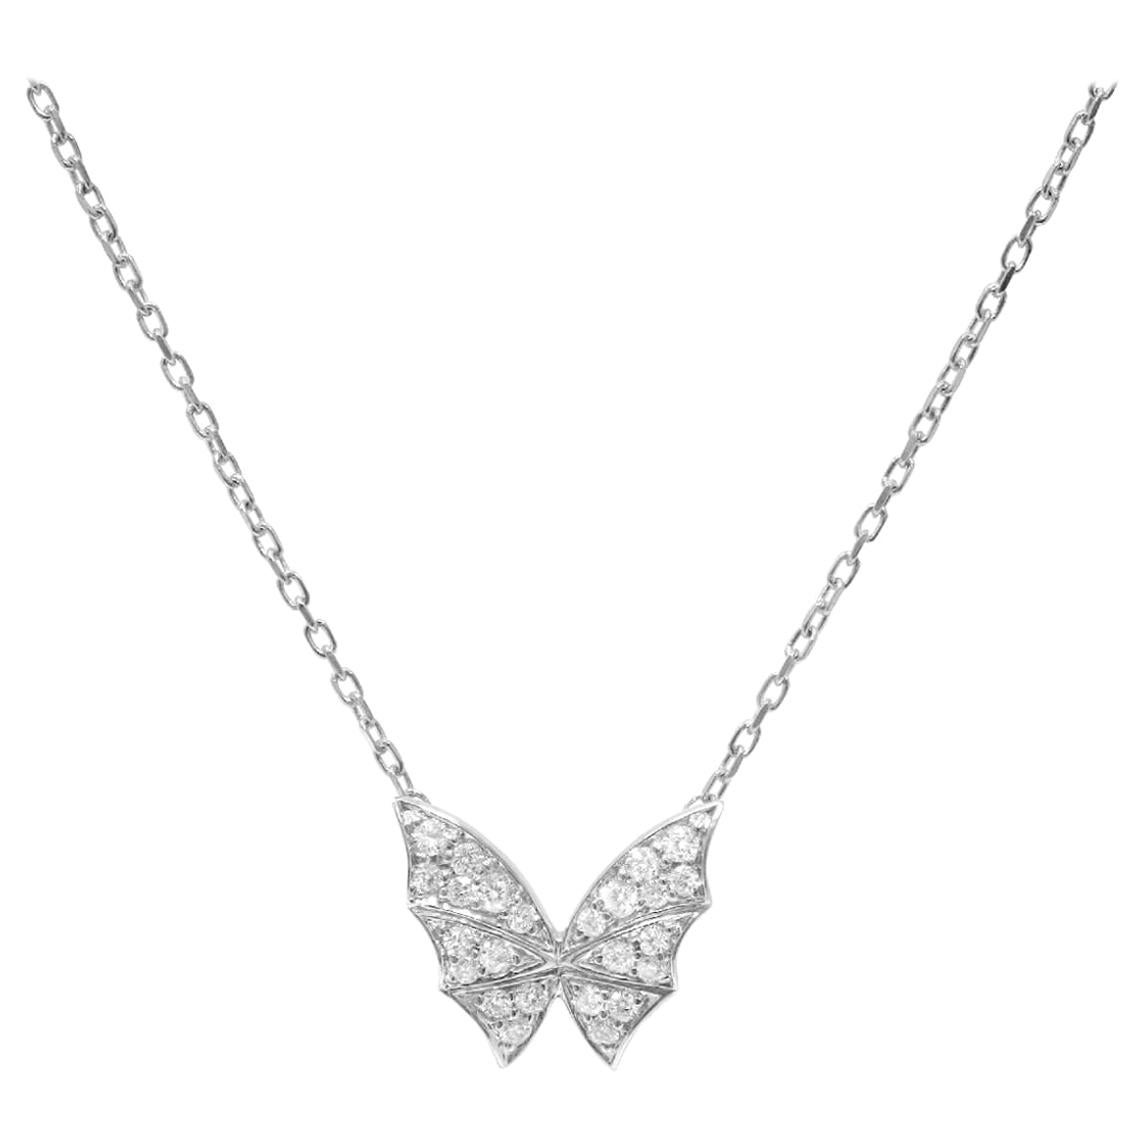 Stephen Webster Fly by Night 18 Carat White Gold and White Diamond Pavé Necklace